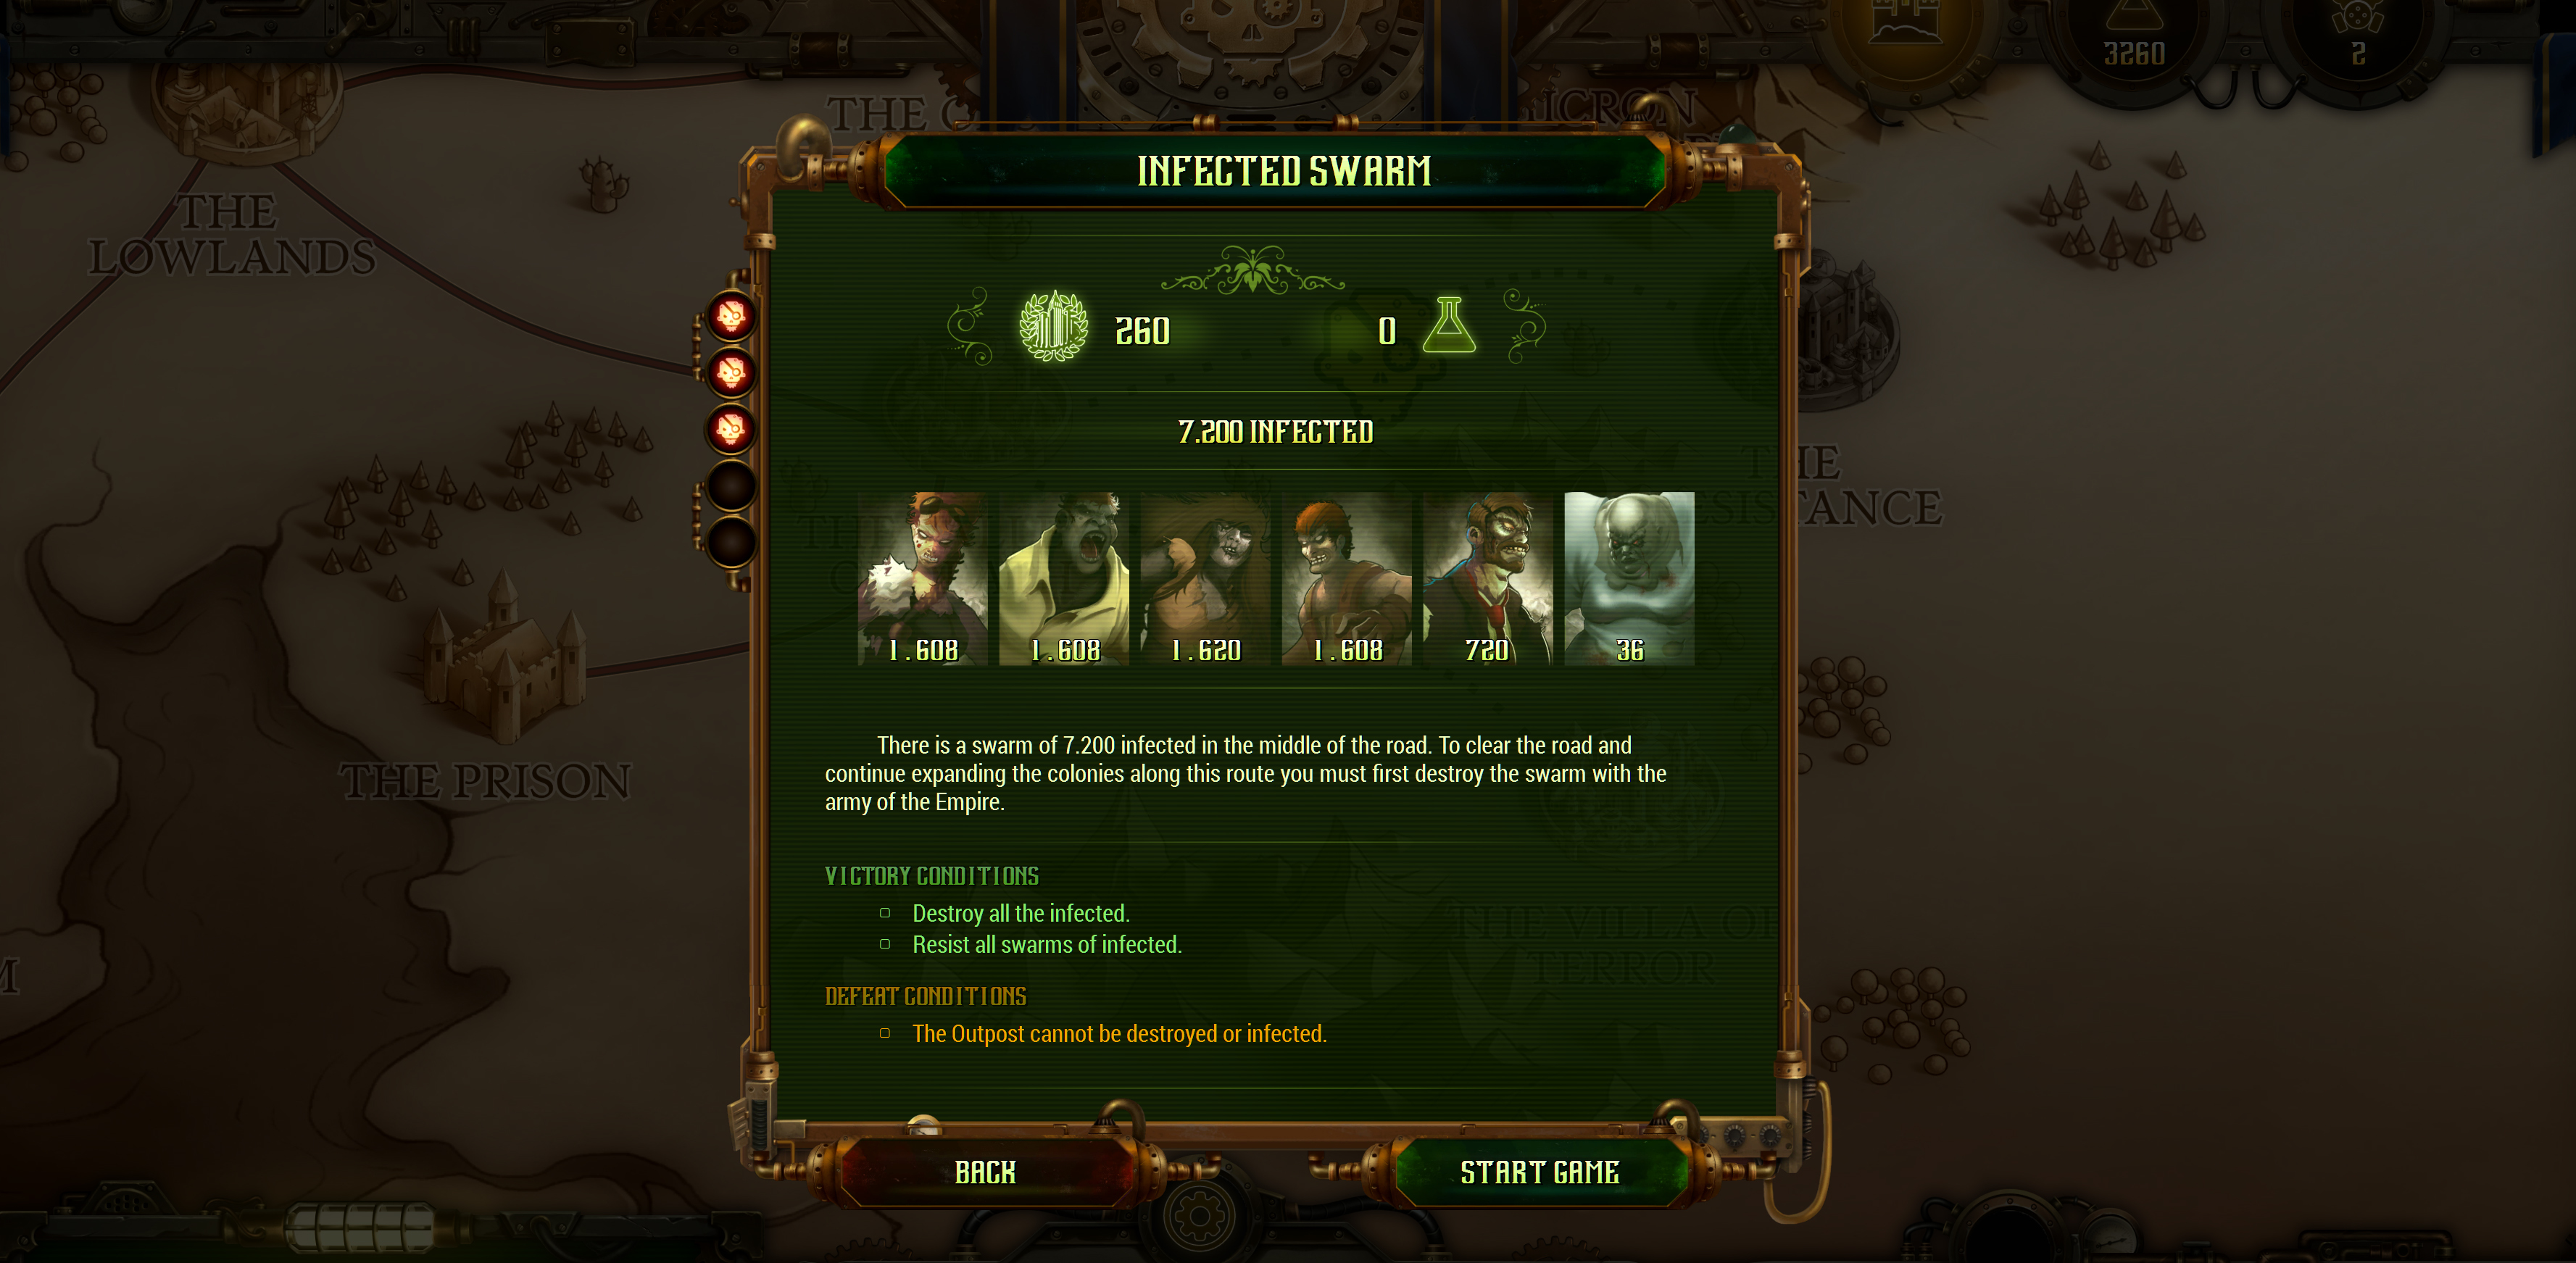 they are billions missions